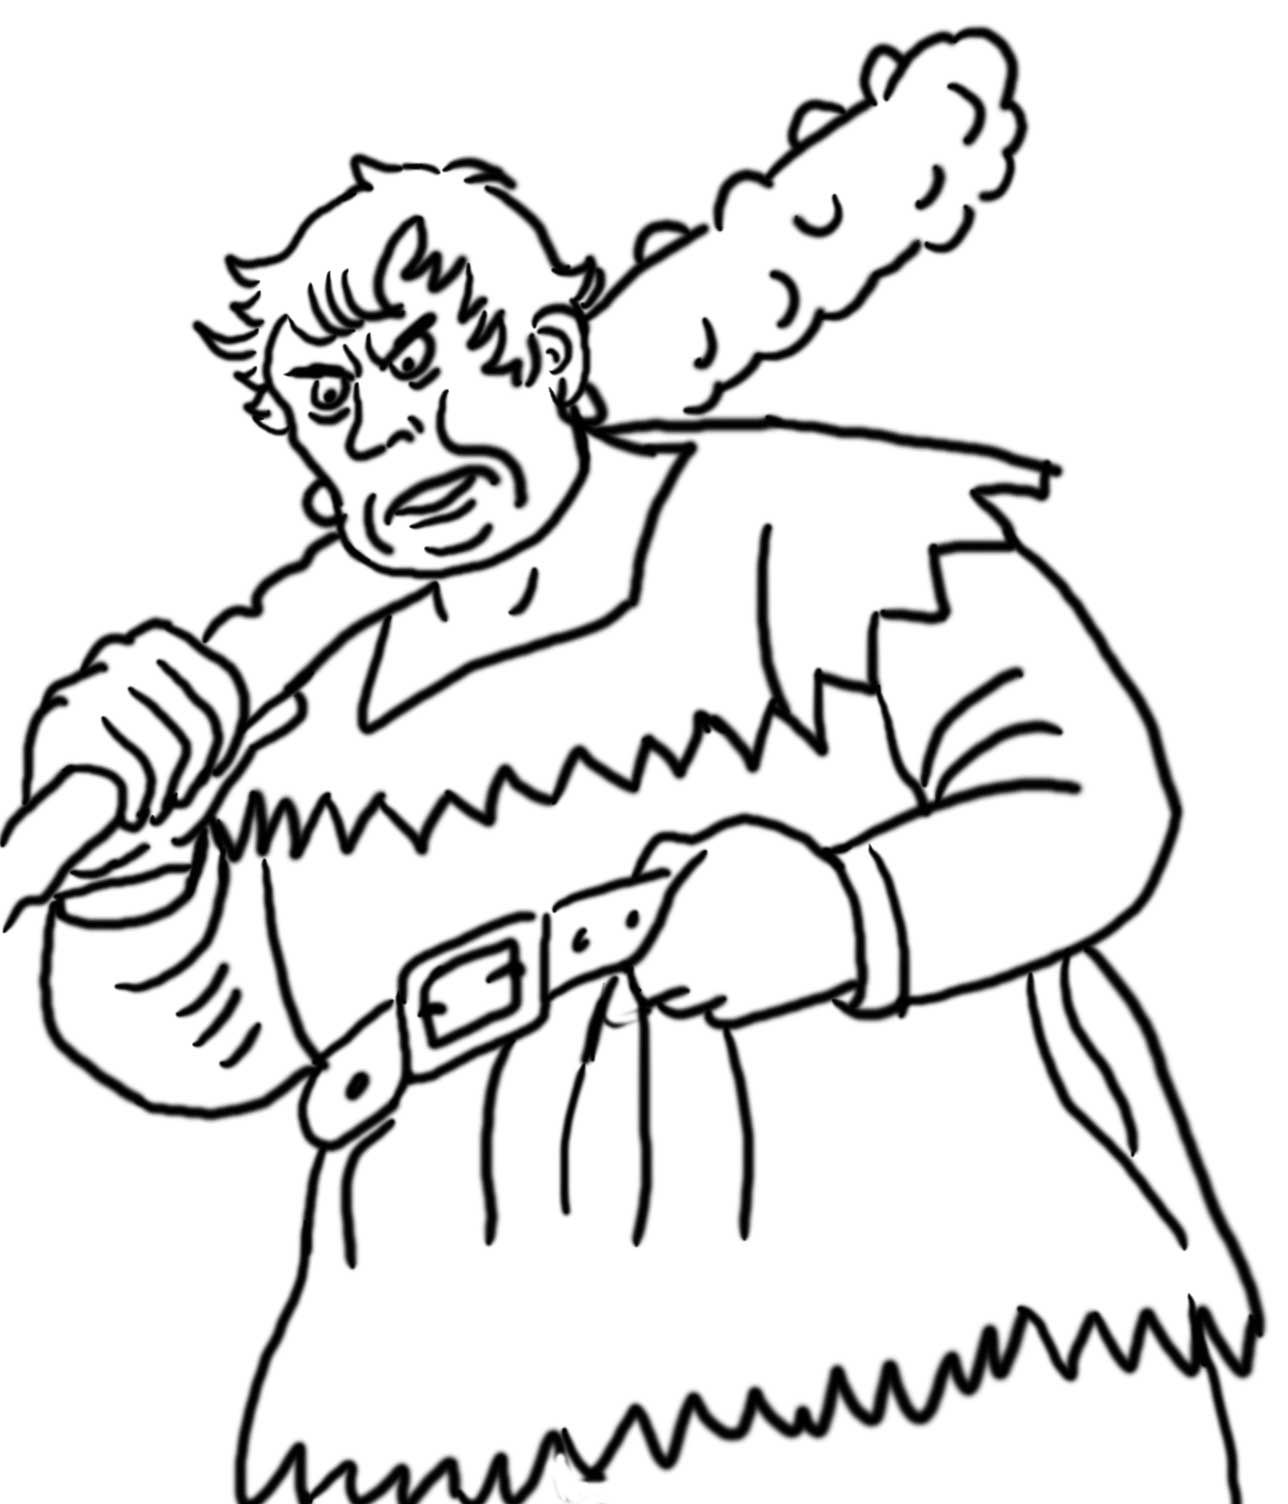 Folk And Fairy Tales Jack And The Beanstalk Storytime Crafts Fairy Coloring Pages Coloring Pages Storytime Crafts [ 1504 x 1288 Pixel ]